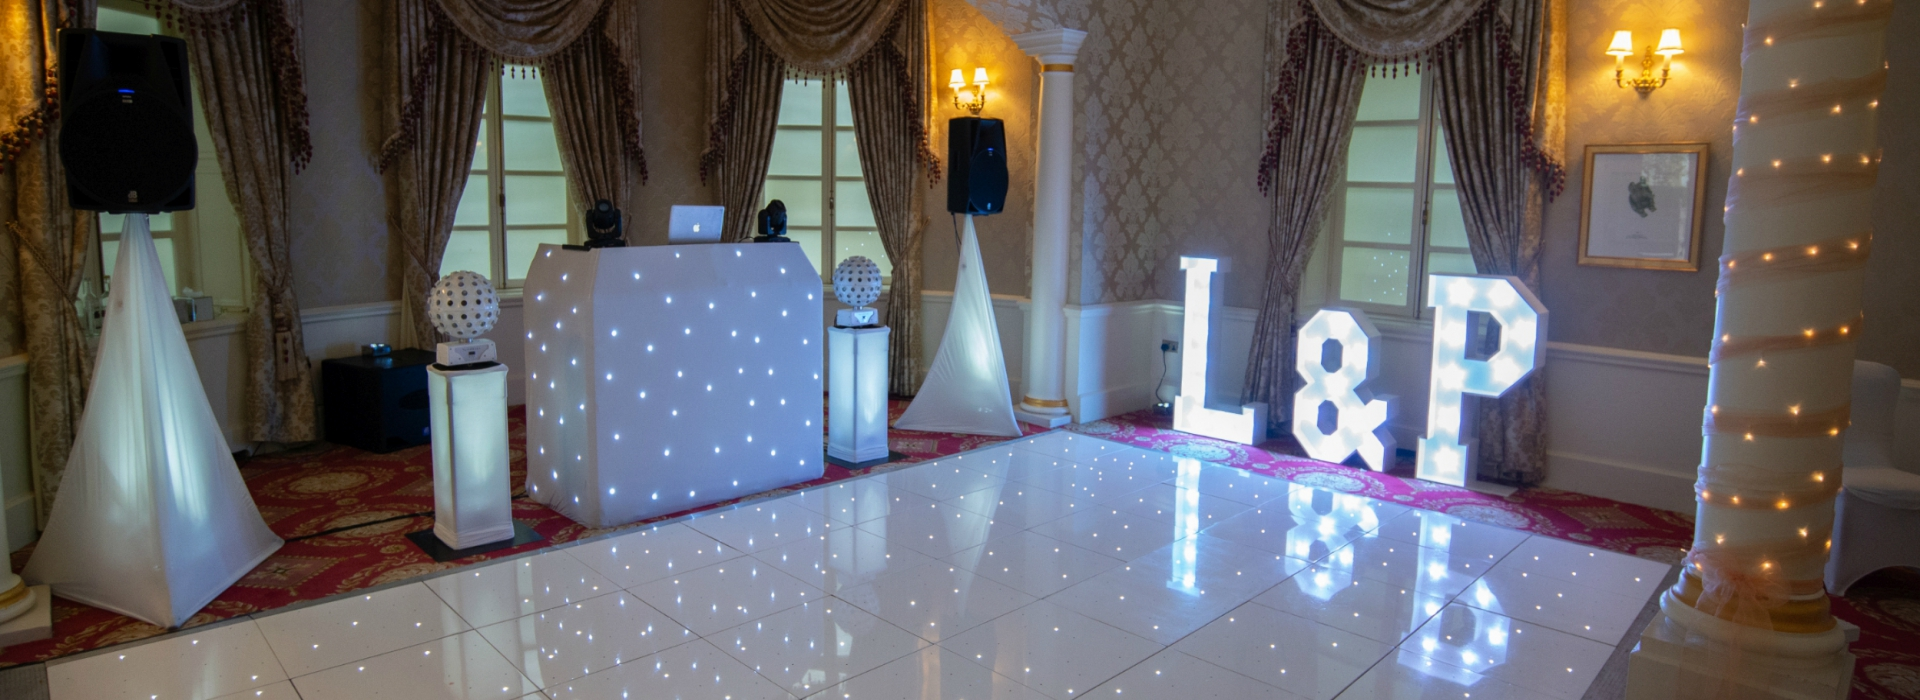 Wedding DJ Luton Hoo